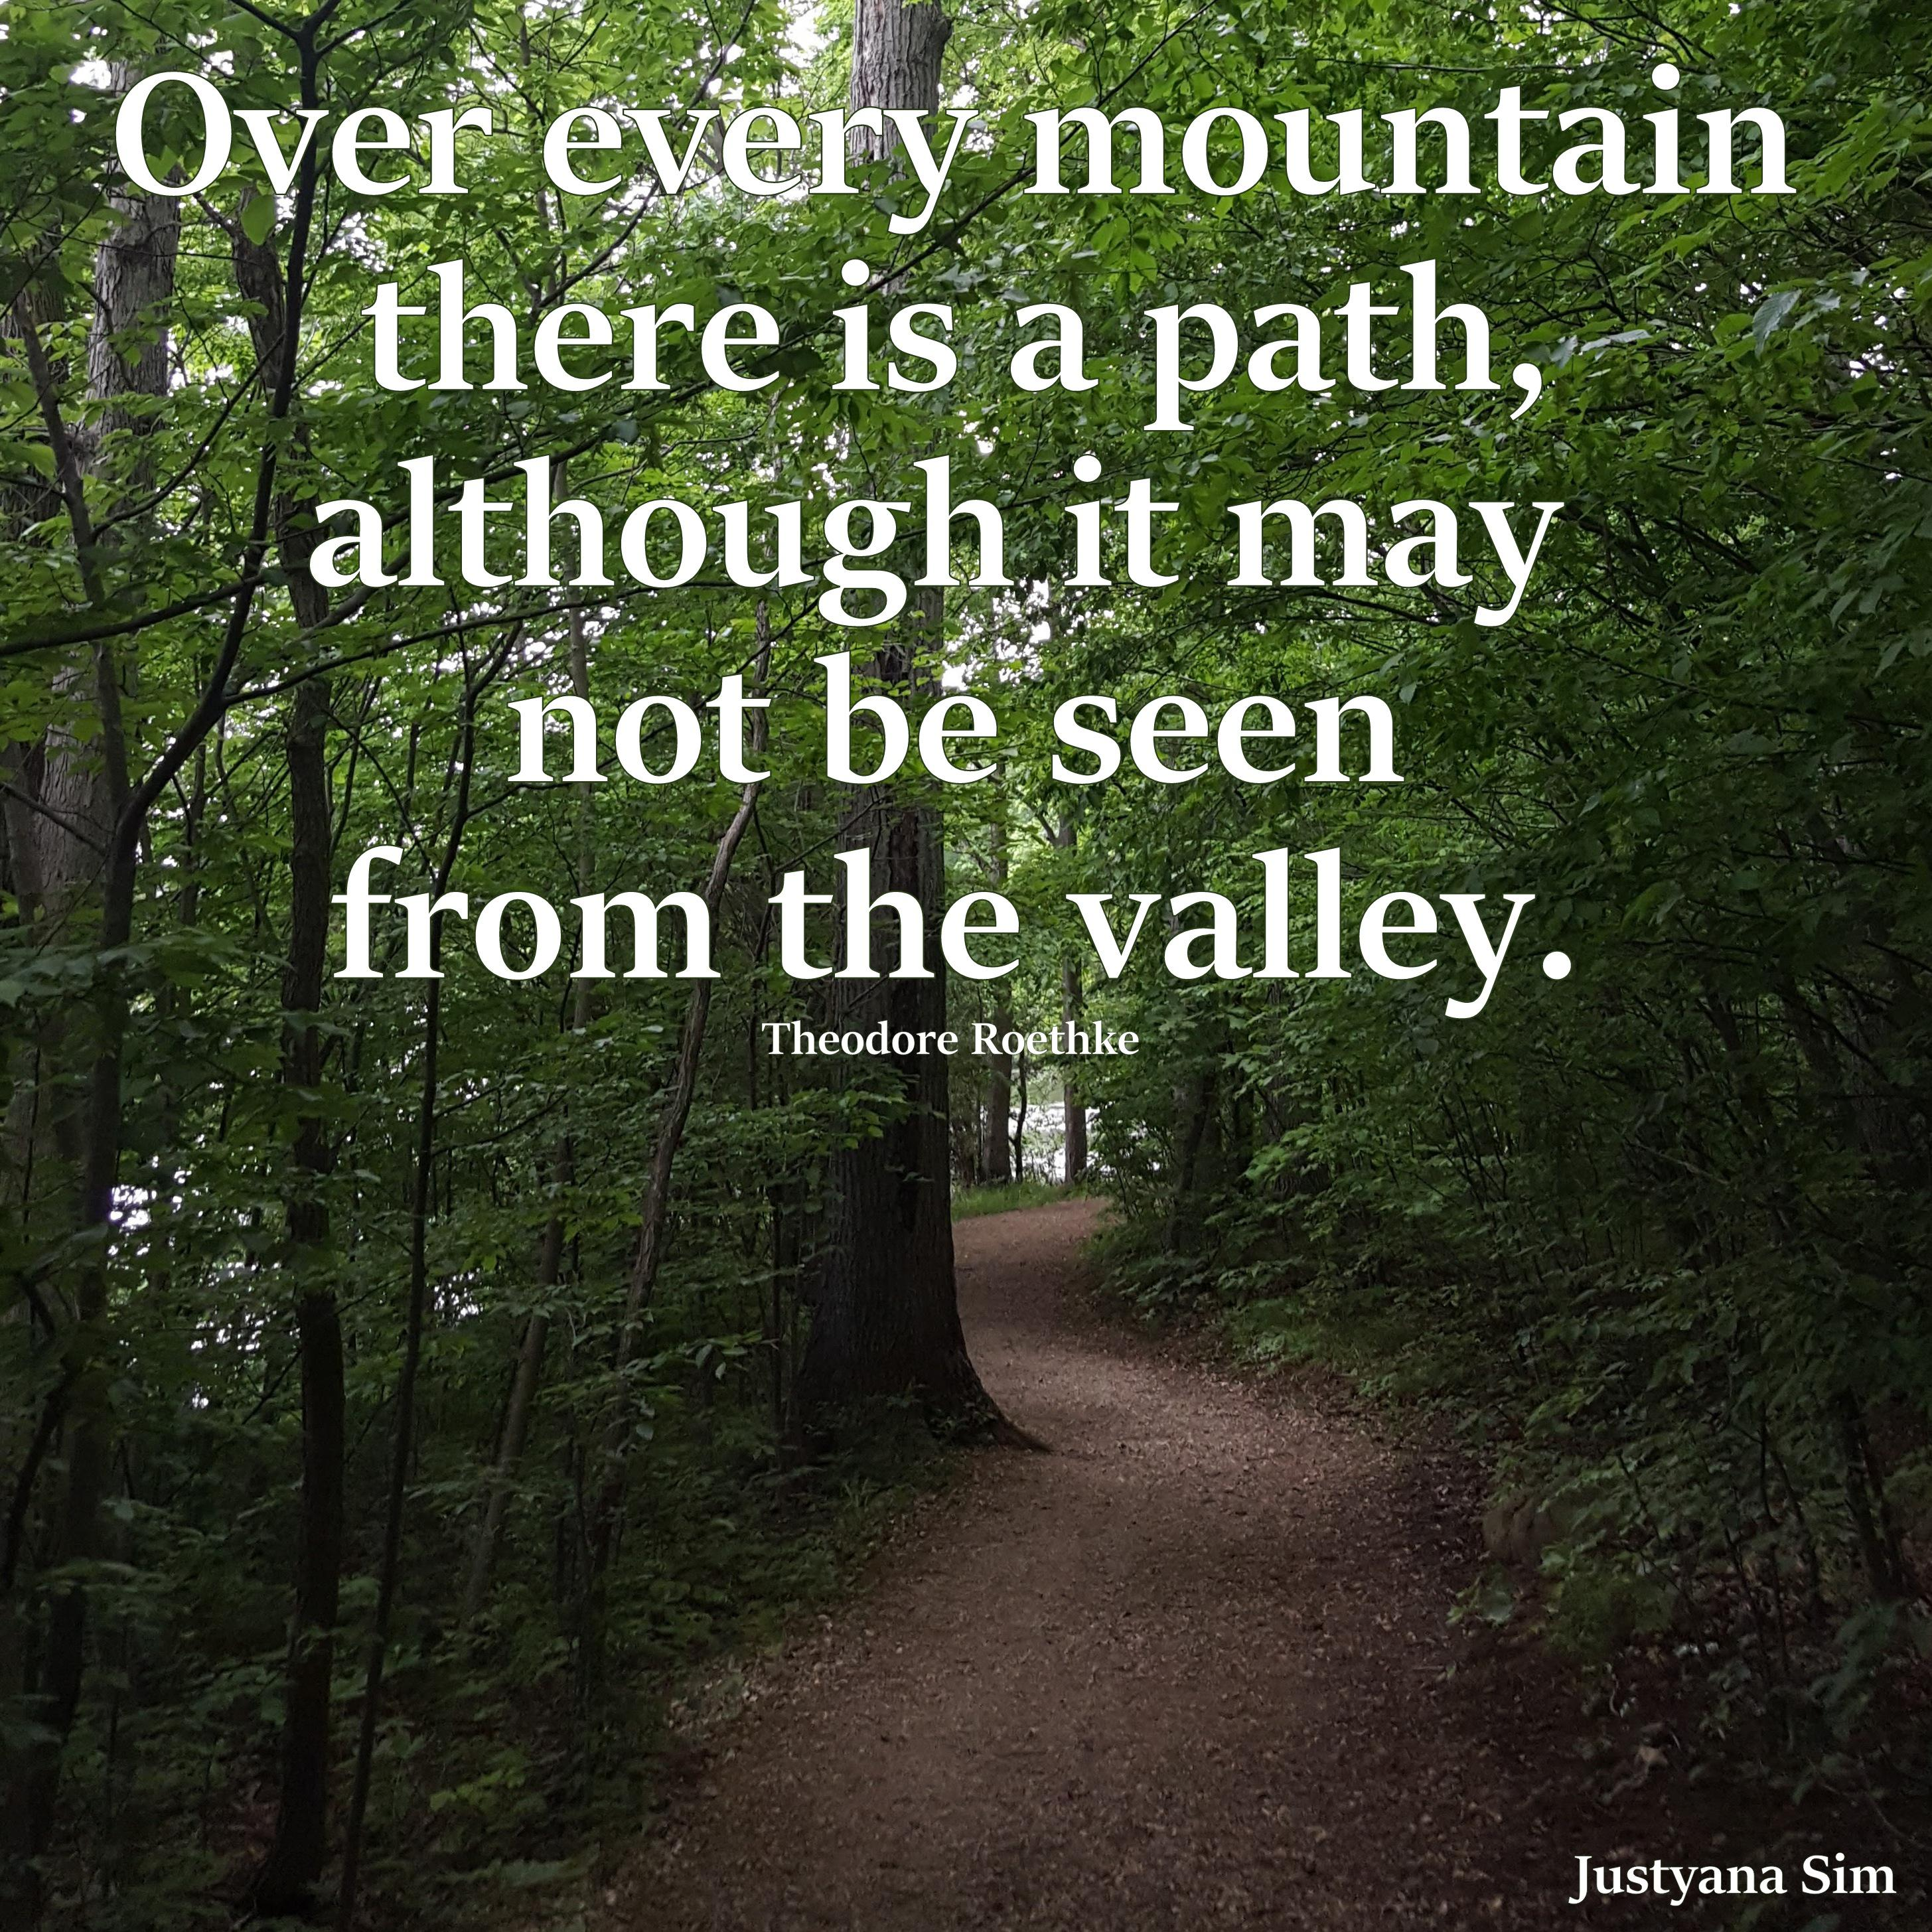 """Over every mountain there is a path, although it may not be seen from the valley."" -Theodore Roethke (2911×2911)"